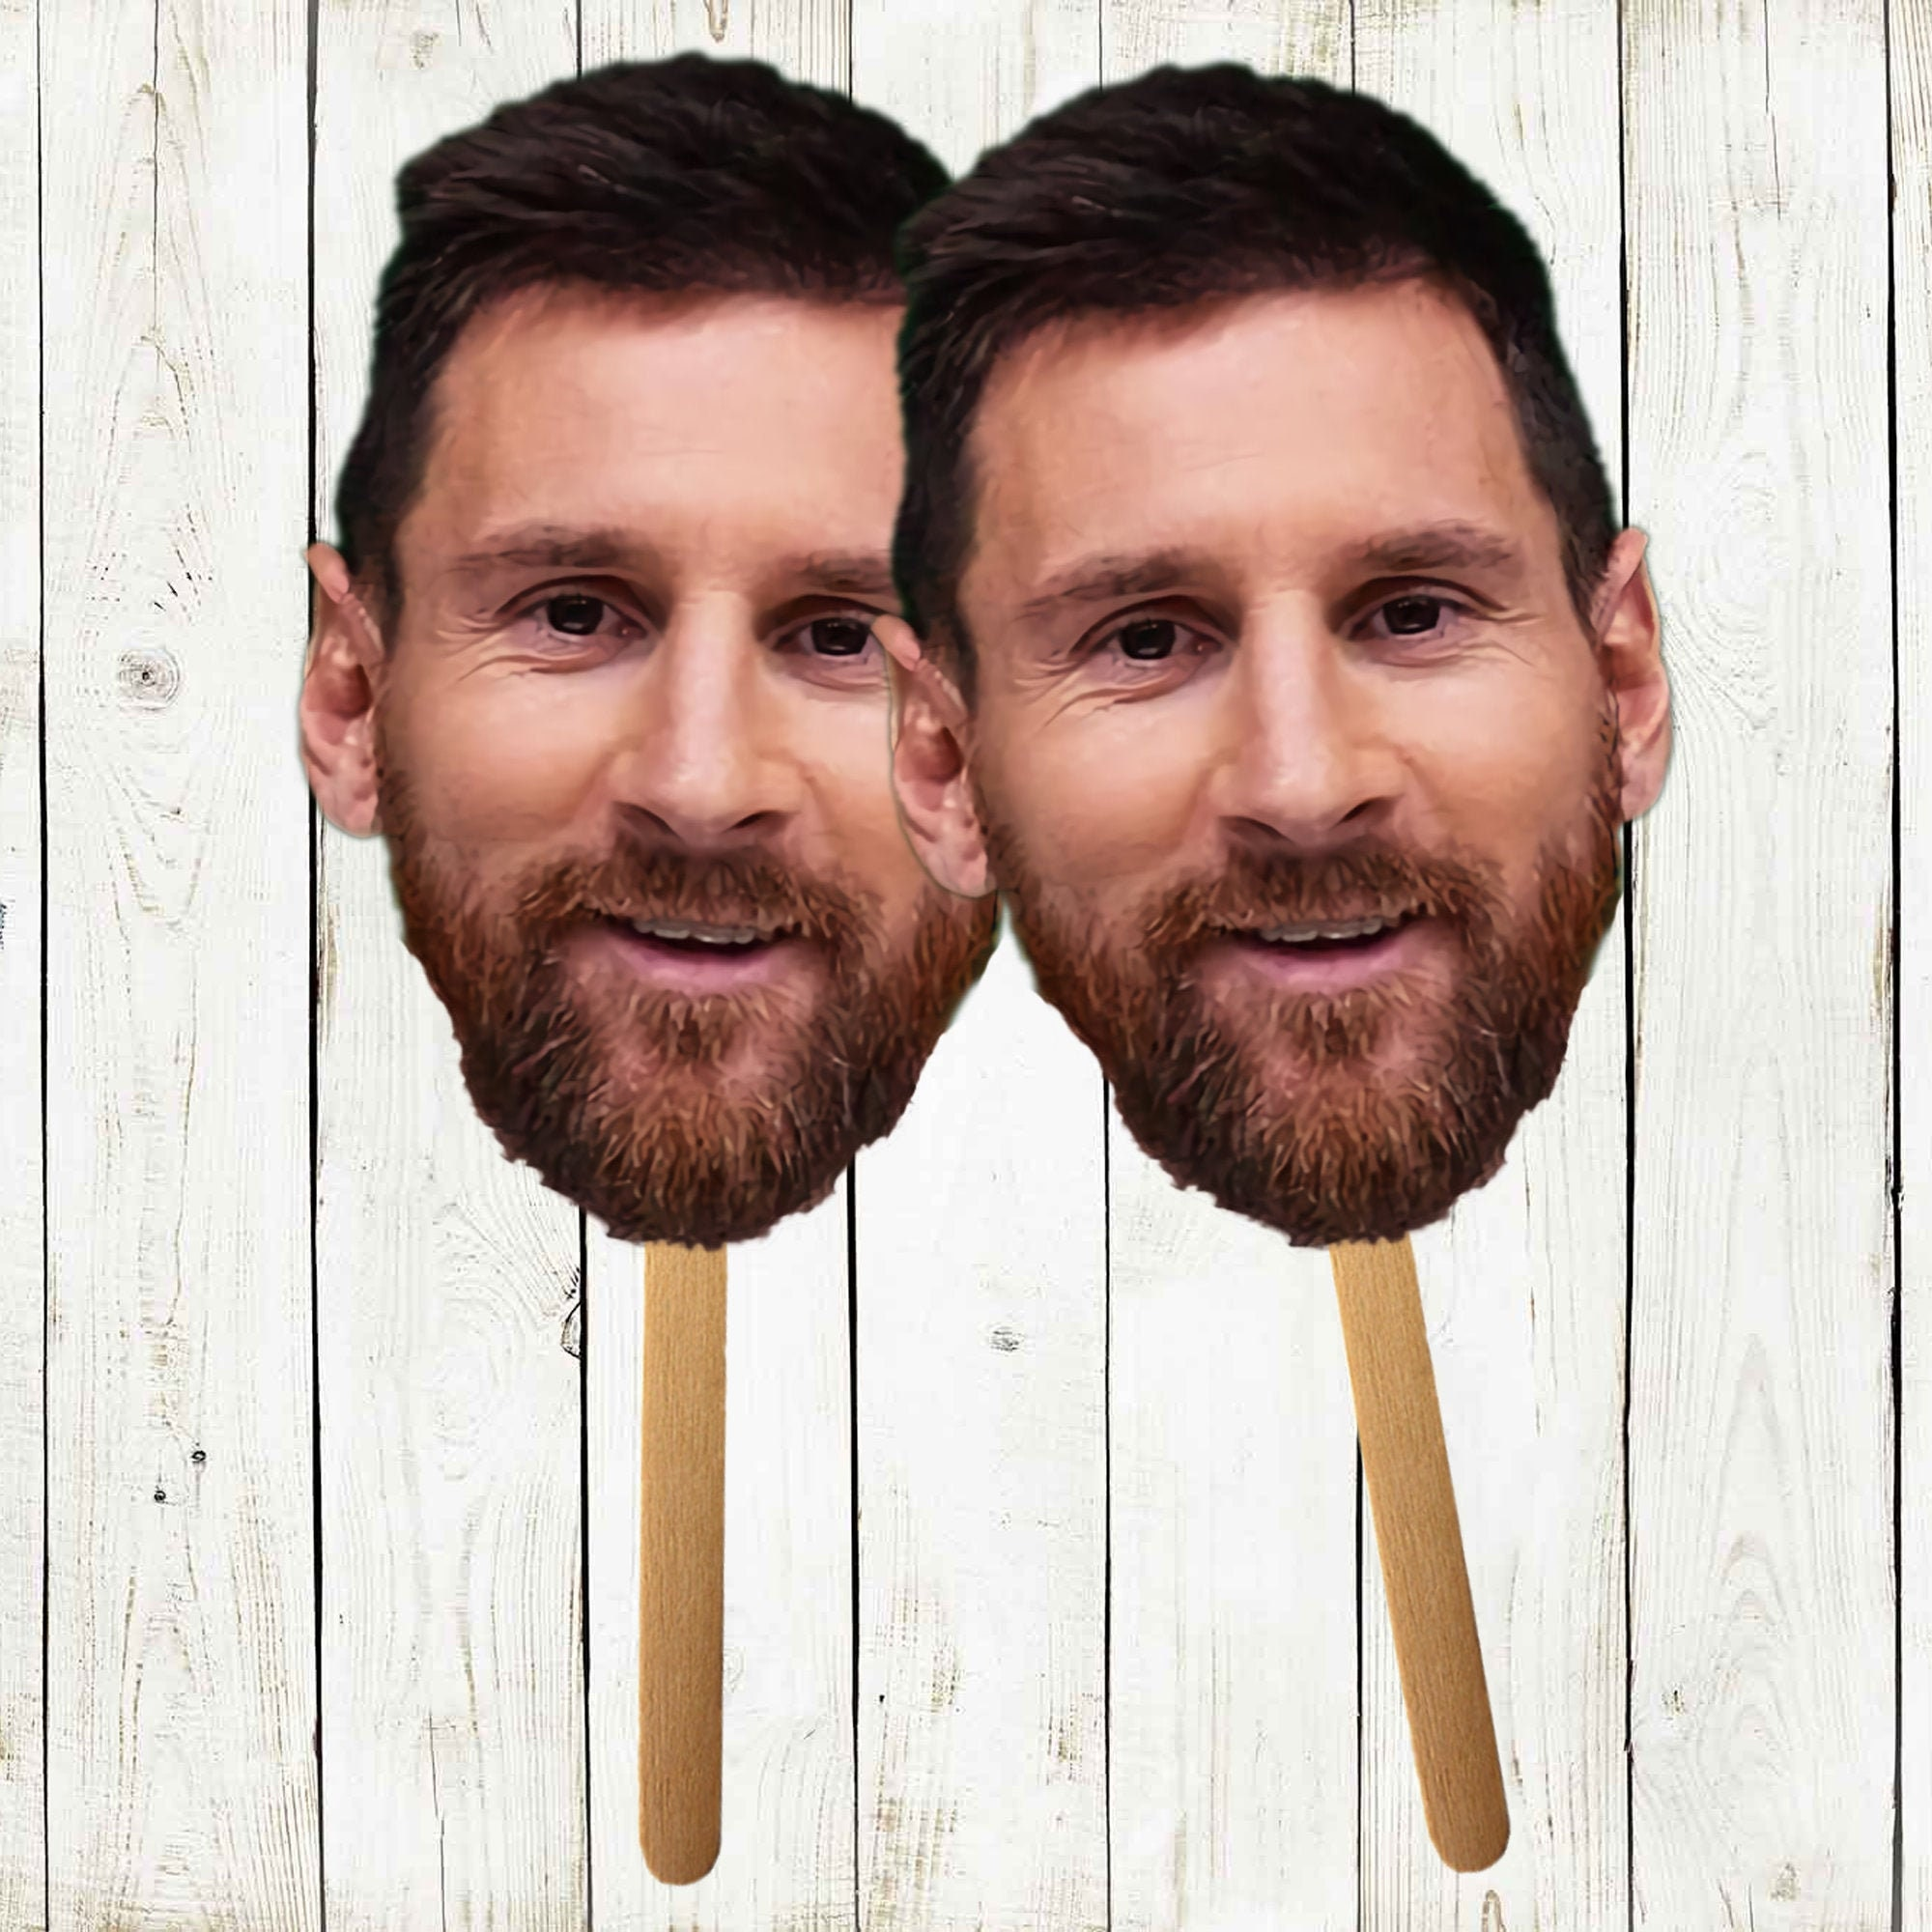 Lionel Messi Face Cutout Cute Cutouts 3 6 12 Pack Etsy